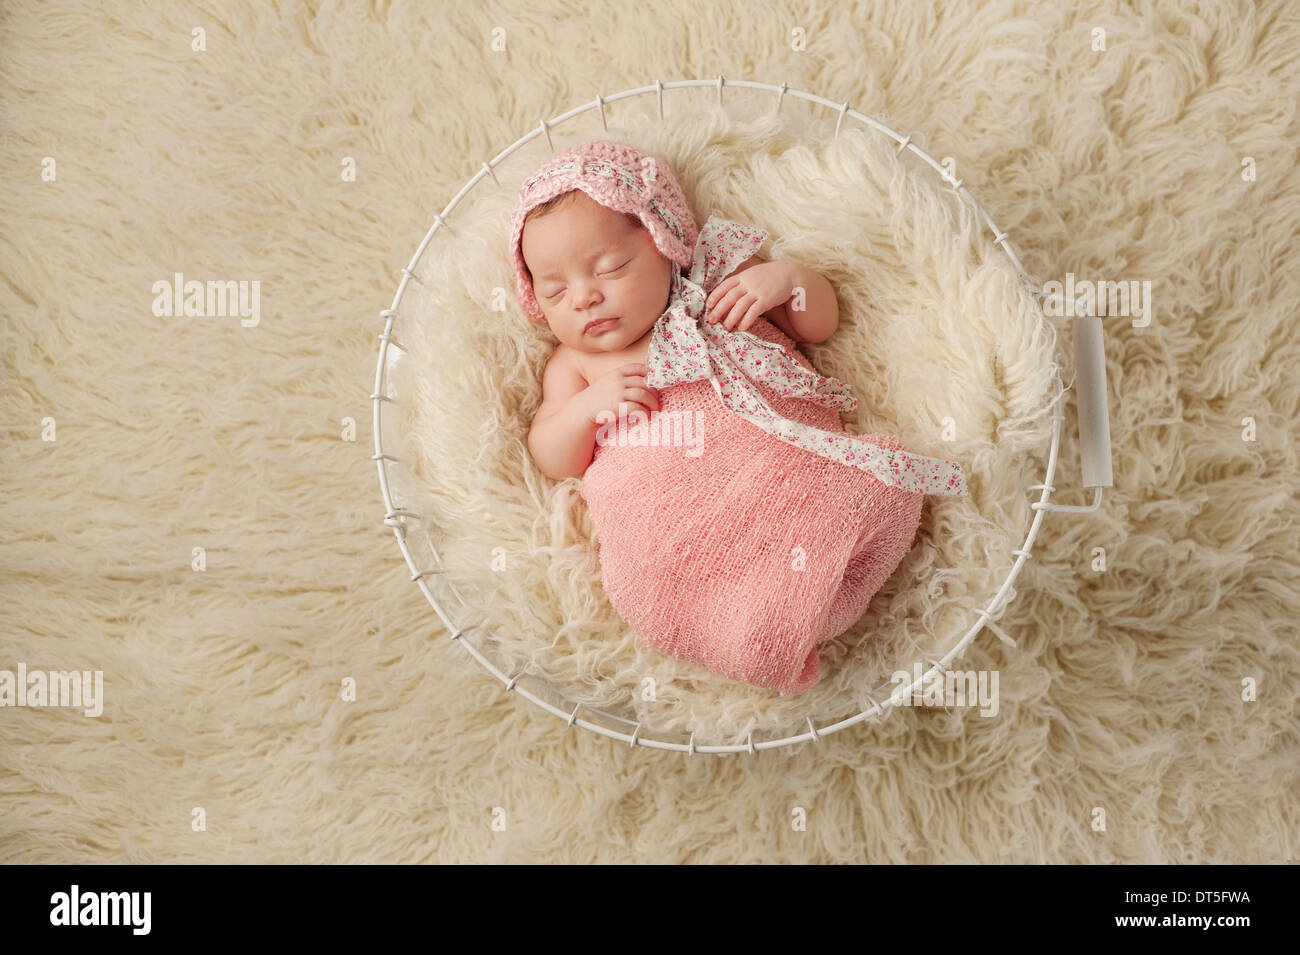 A portrait of a five week old newborn baby girl wearing a pink bonnet and  sleeping in a wire basket. Shot from overhead. 03bd5d5ef68